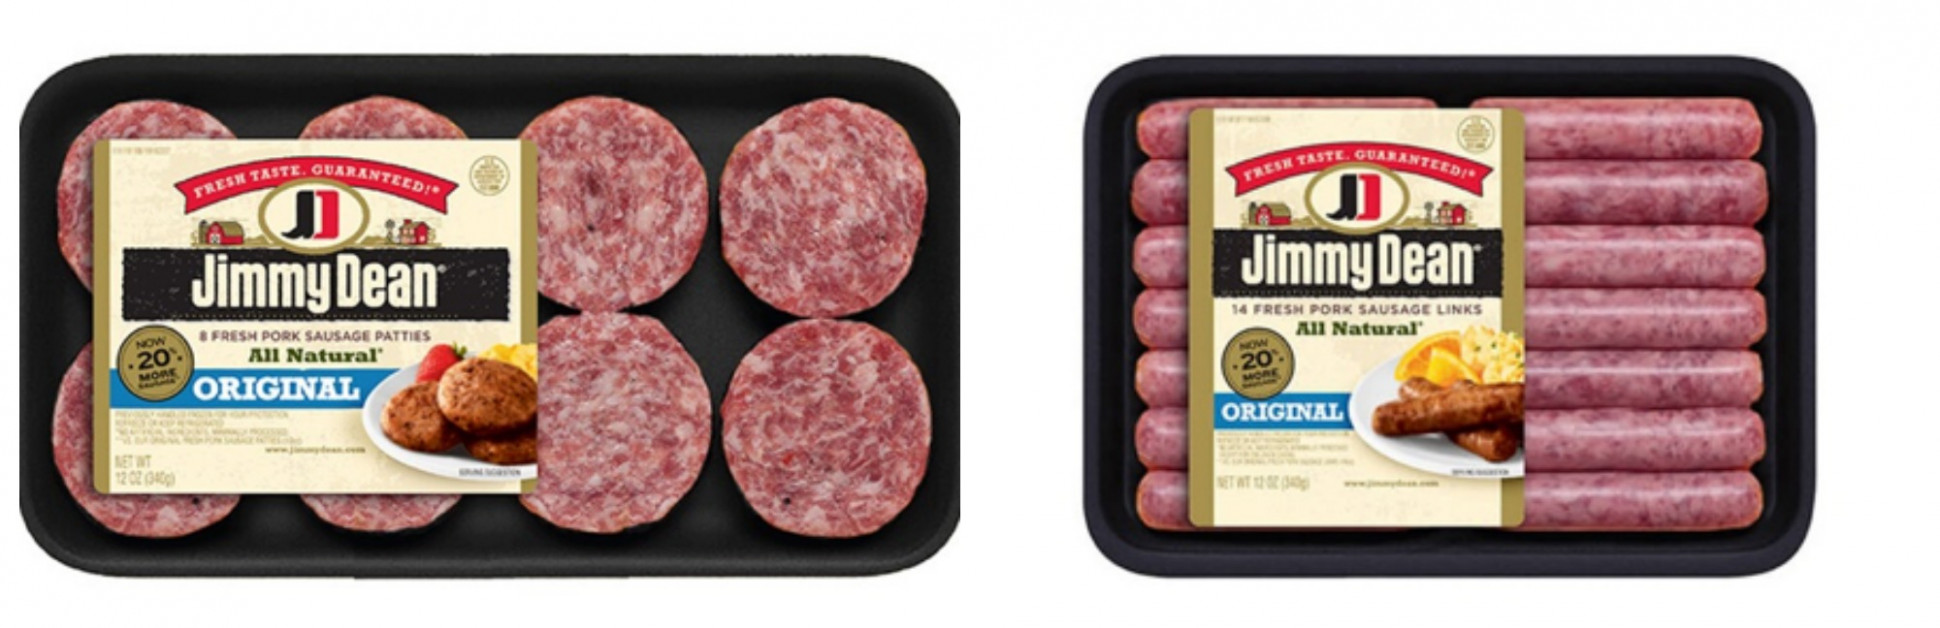 Grab A Great Deal On Jimmy Dean® Premium All Natural Pork ..